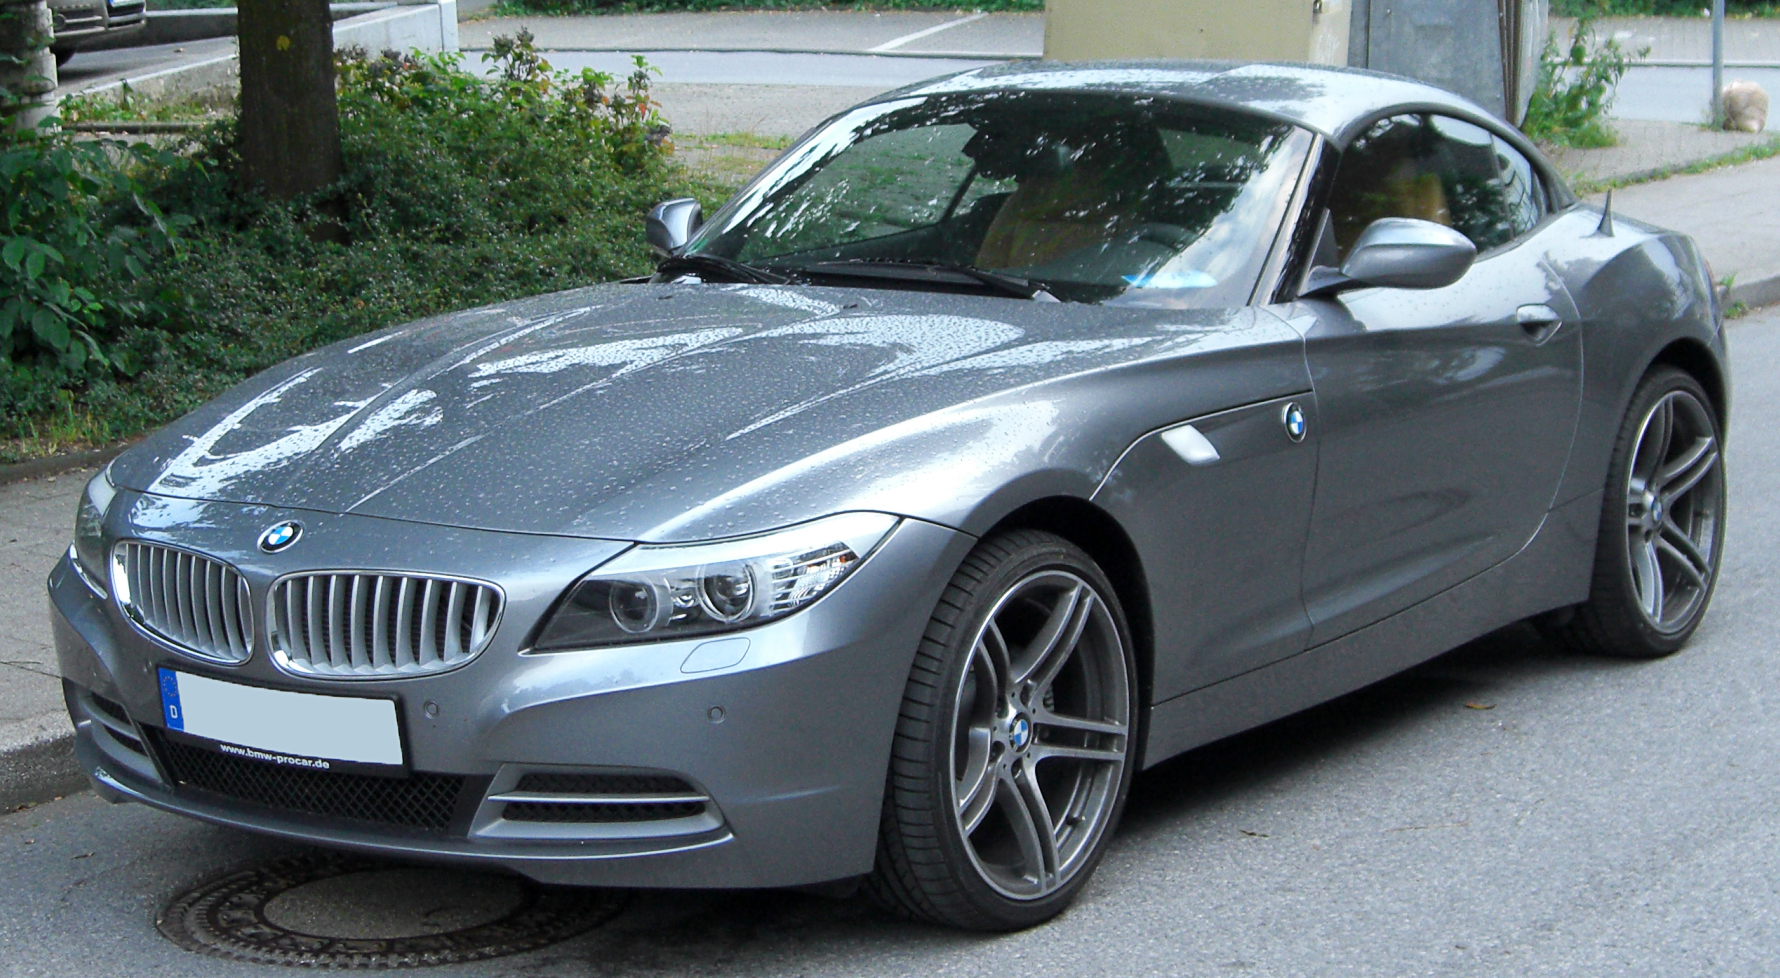 File Bmw Z4 E89 Front 20100705 Jpg Wikimedia Commons